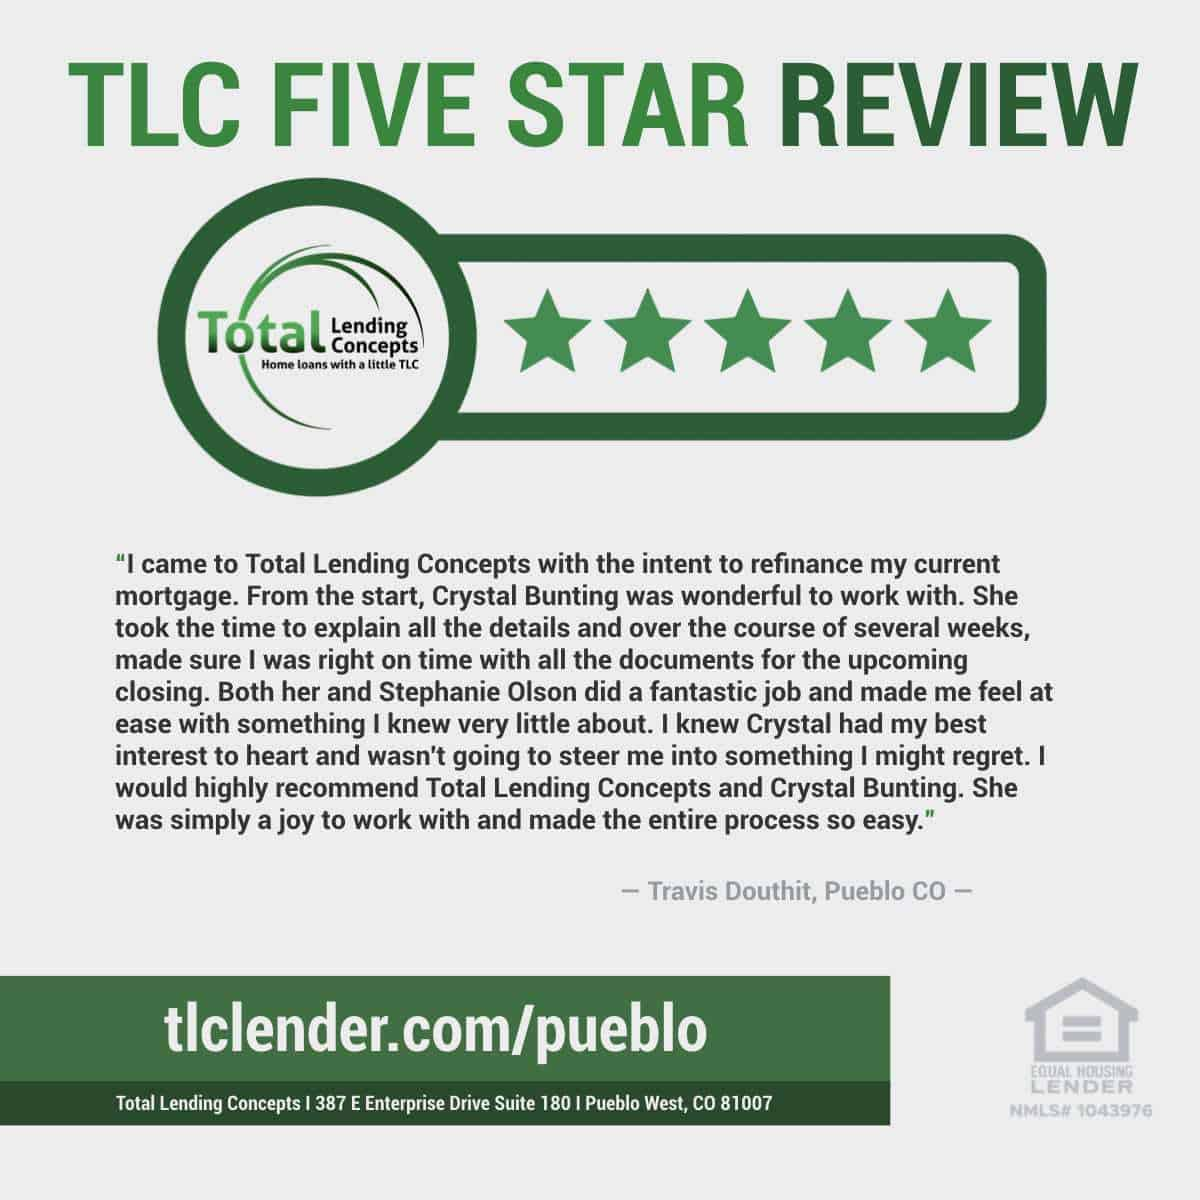 Total-Lending-Concepts-Five-Star-Review-Travis-Douthit-in-Pueblo-West-Colorado-for-Crystal-Bunting-House-Loan